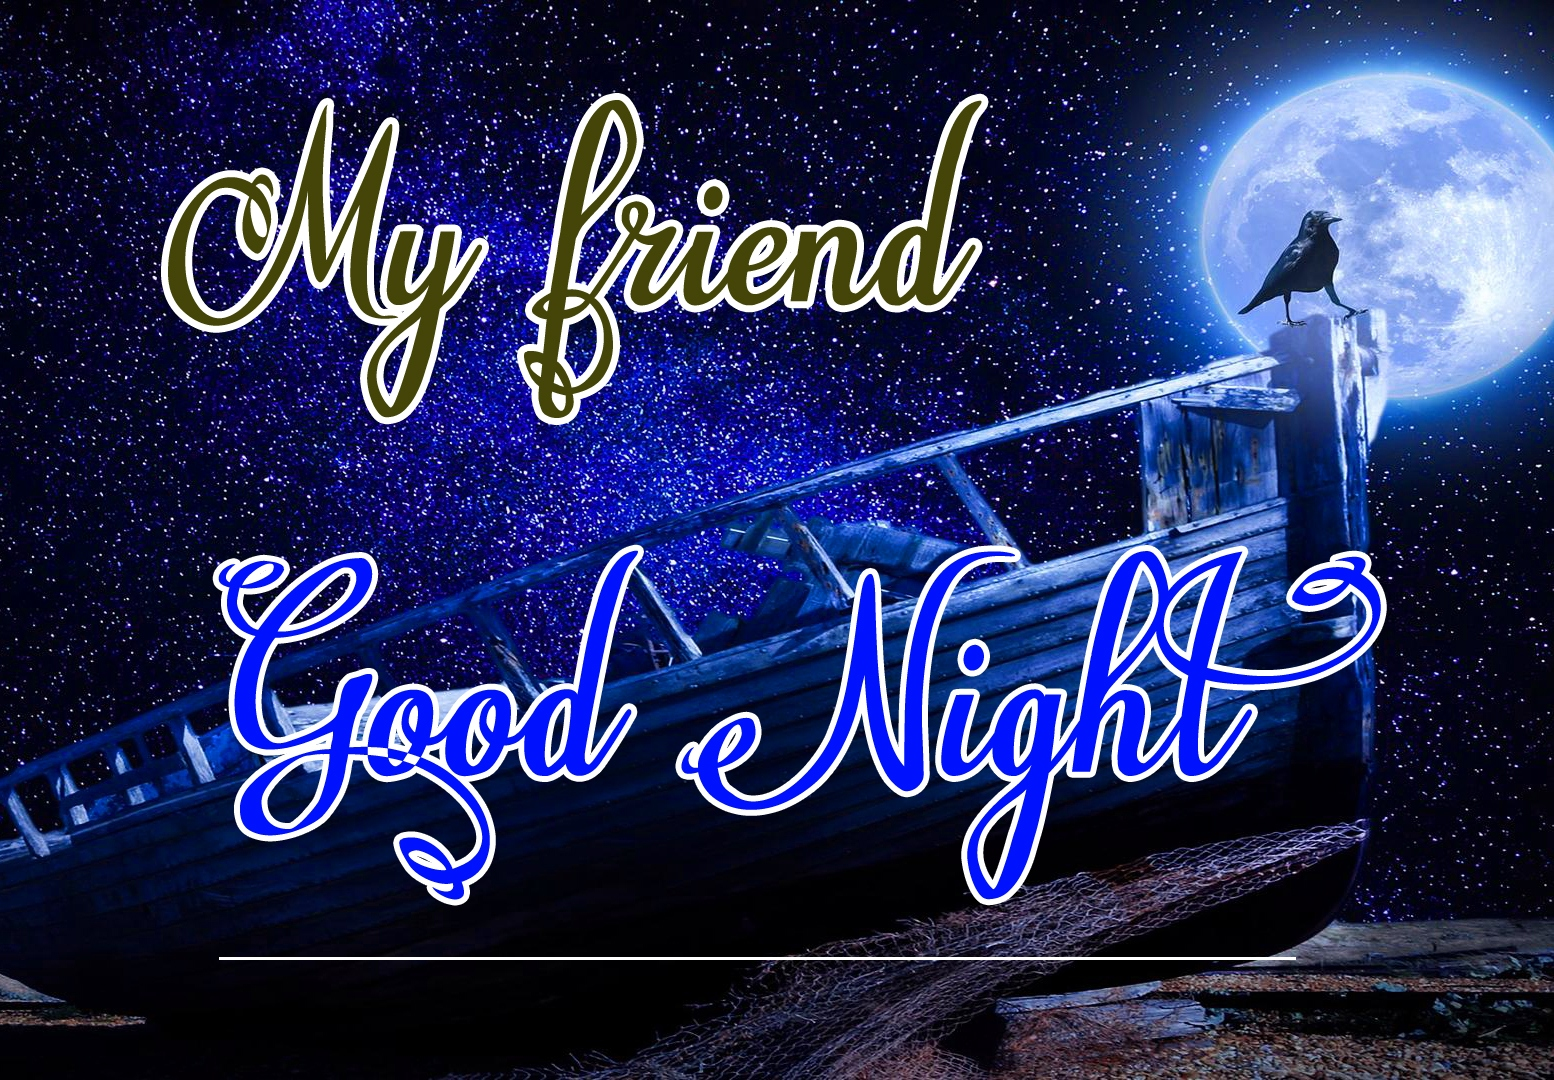 Good night wallpaper hd 15 1